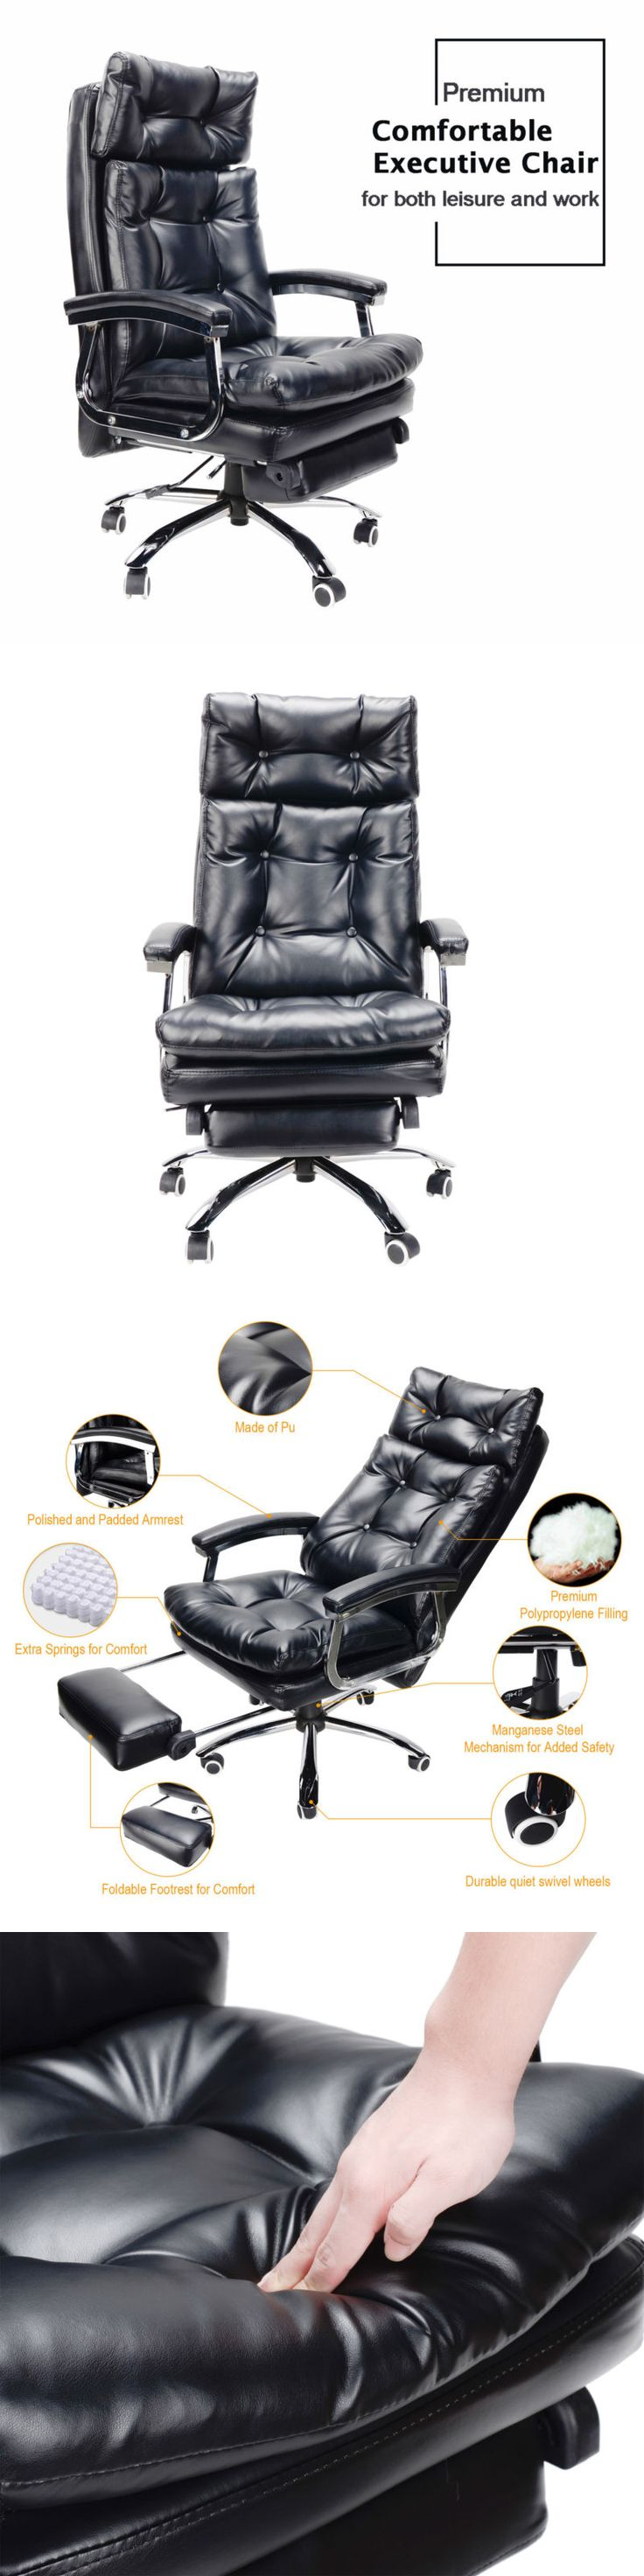 Office Furniture: Executive Reclining Office Chair Ergonomic High Back Leather Footrest Armchair -> BUY IT NOW ONLY: $179.99 on eBay!